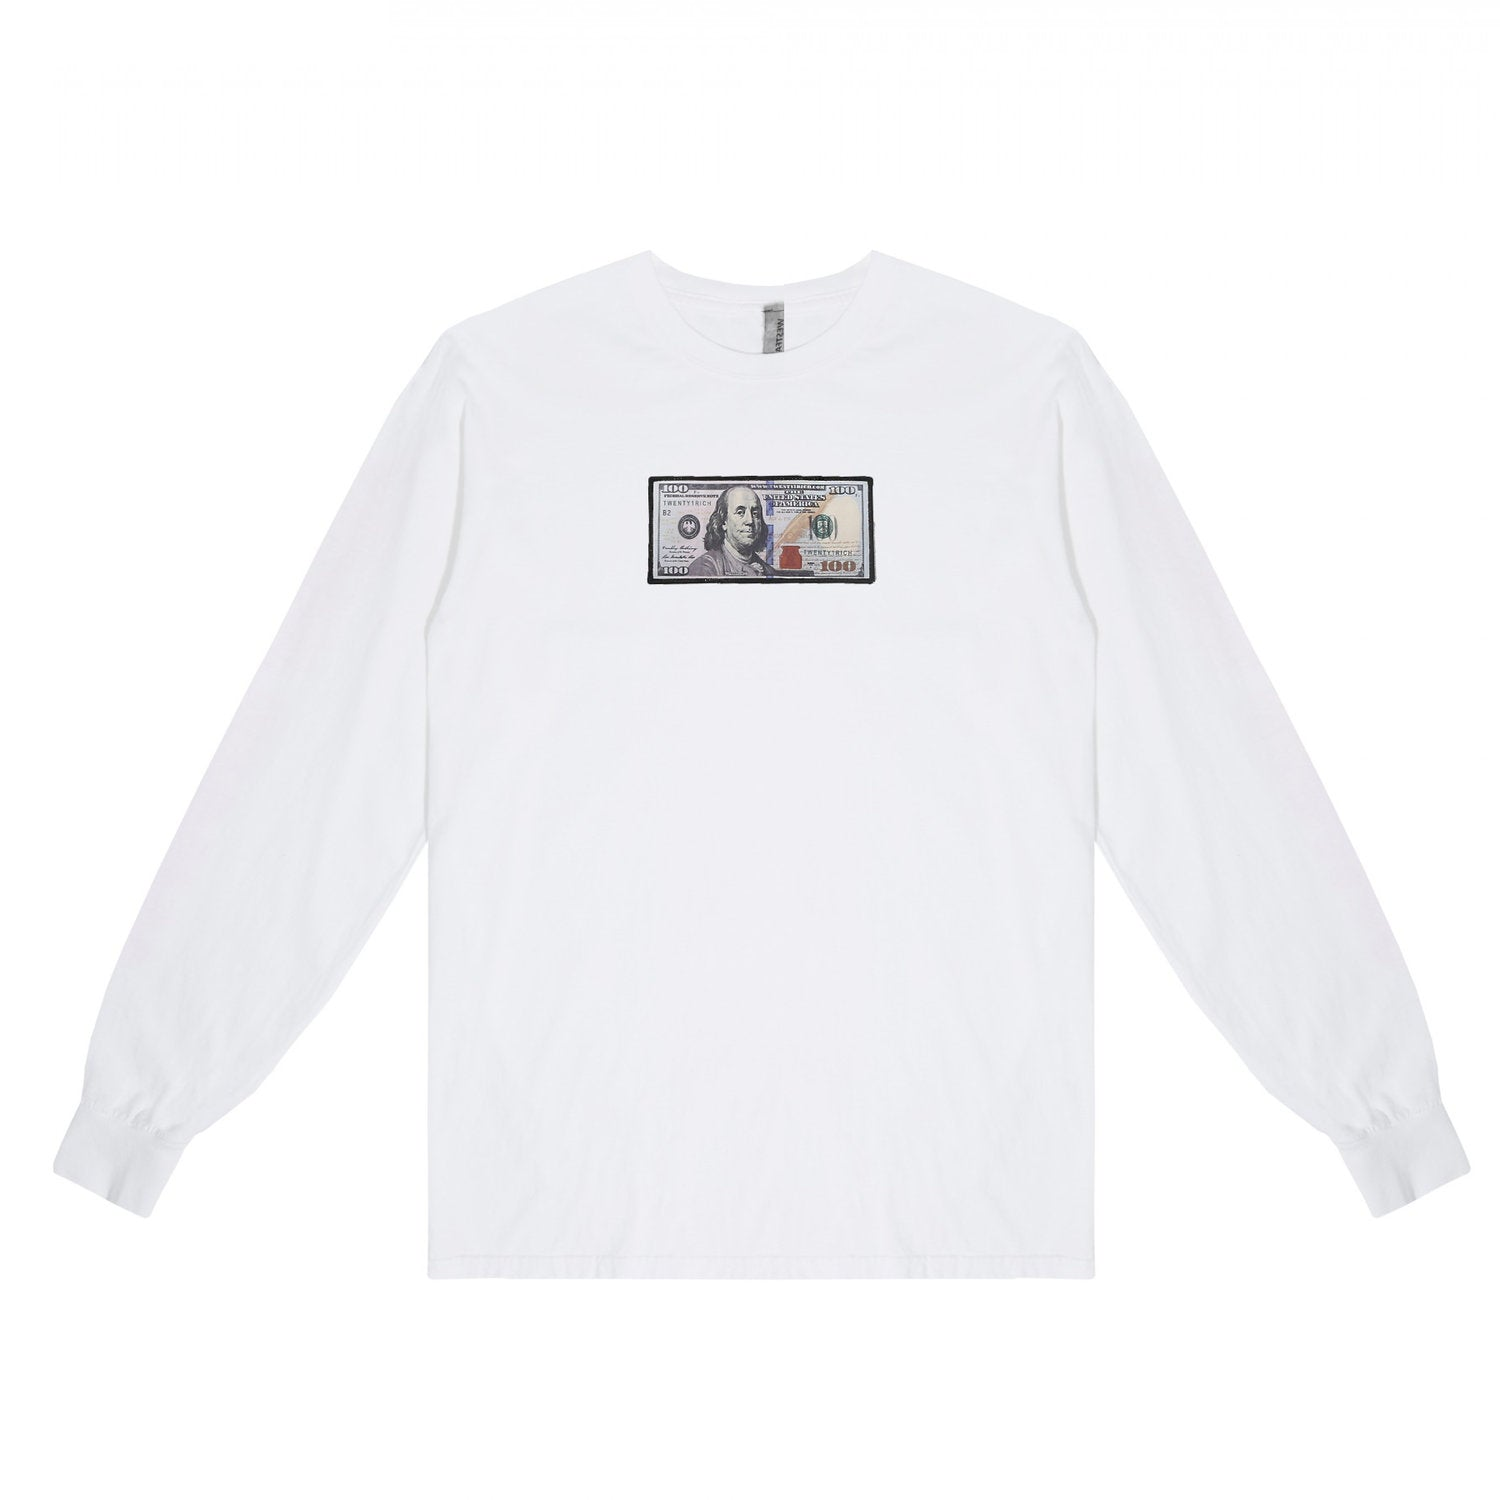 White Long Sleeve Shirt by Twenty1Rich with blue hundred logo